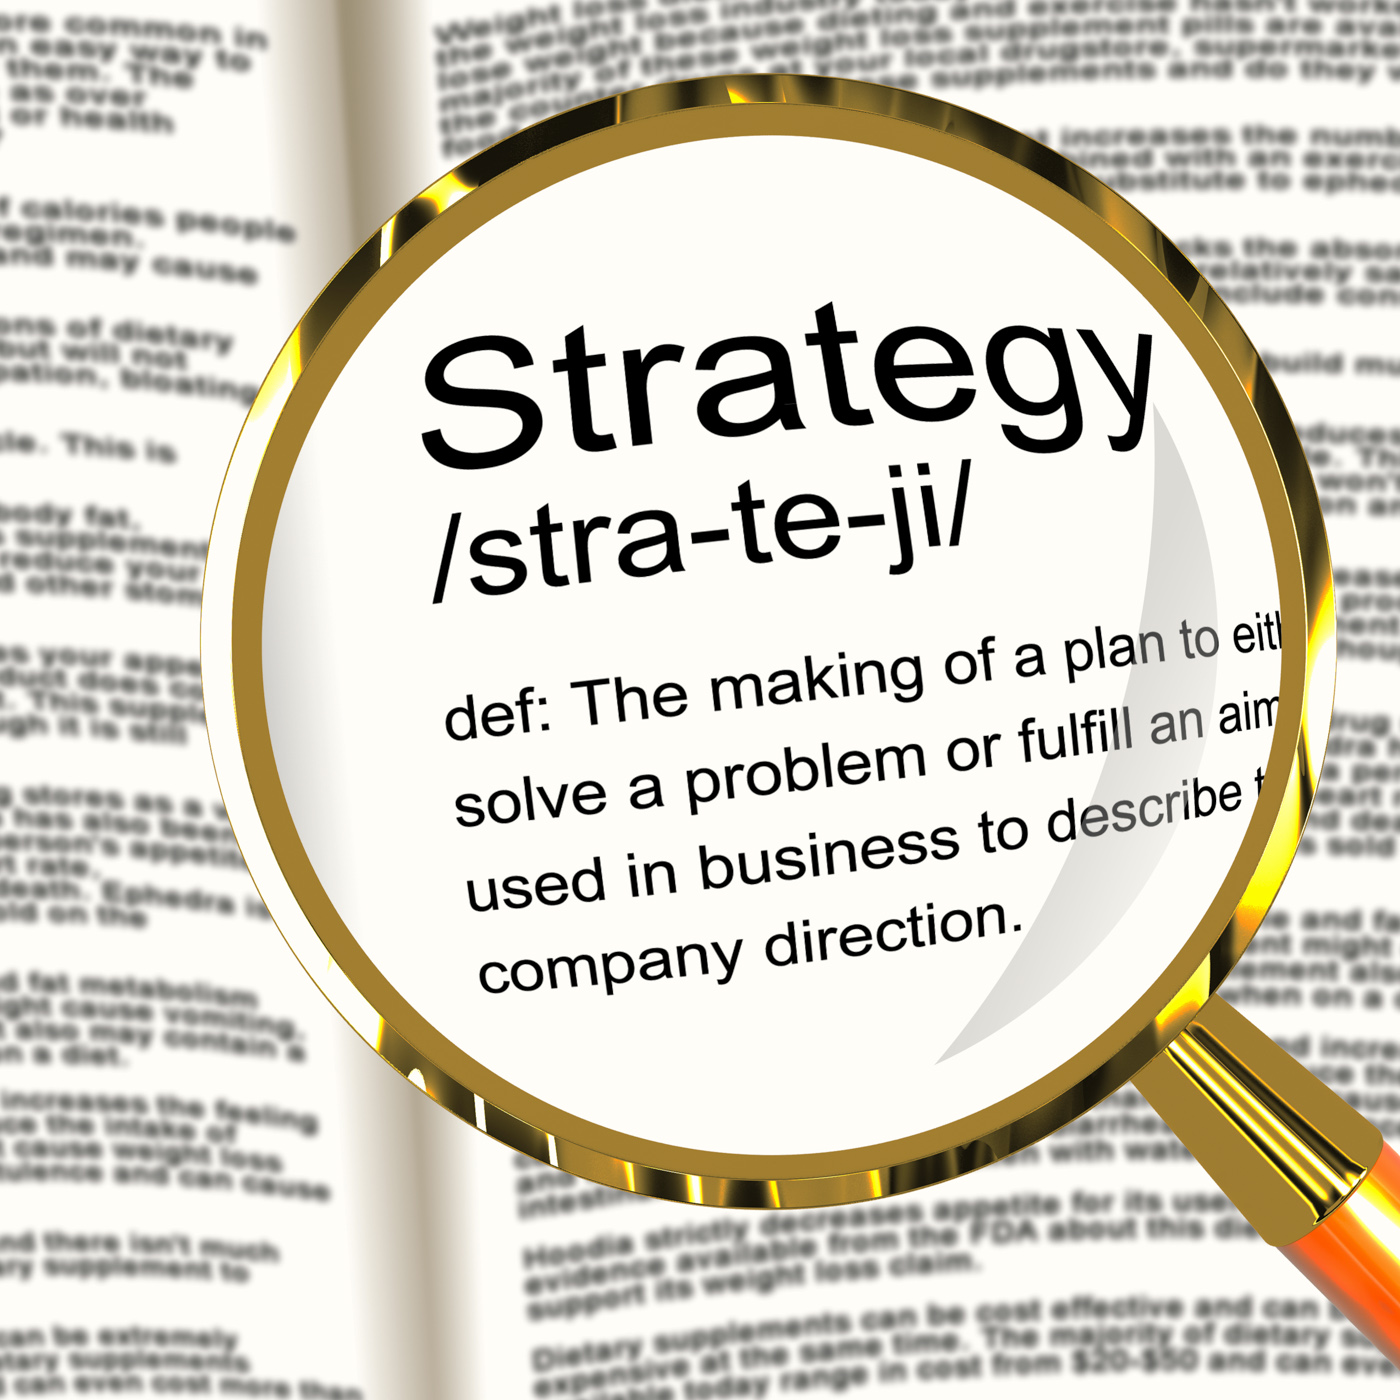 Strategy definition magnifier showing planning organization and leader photo